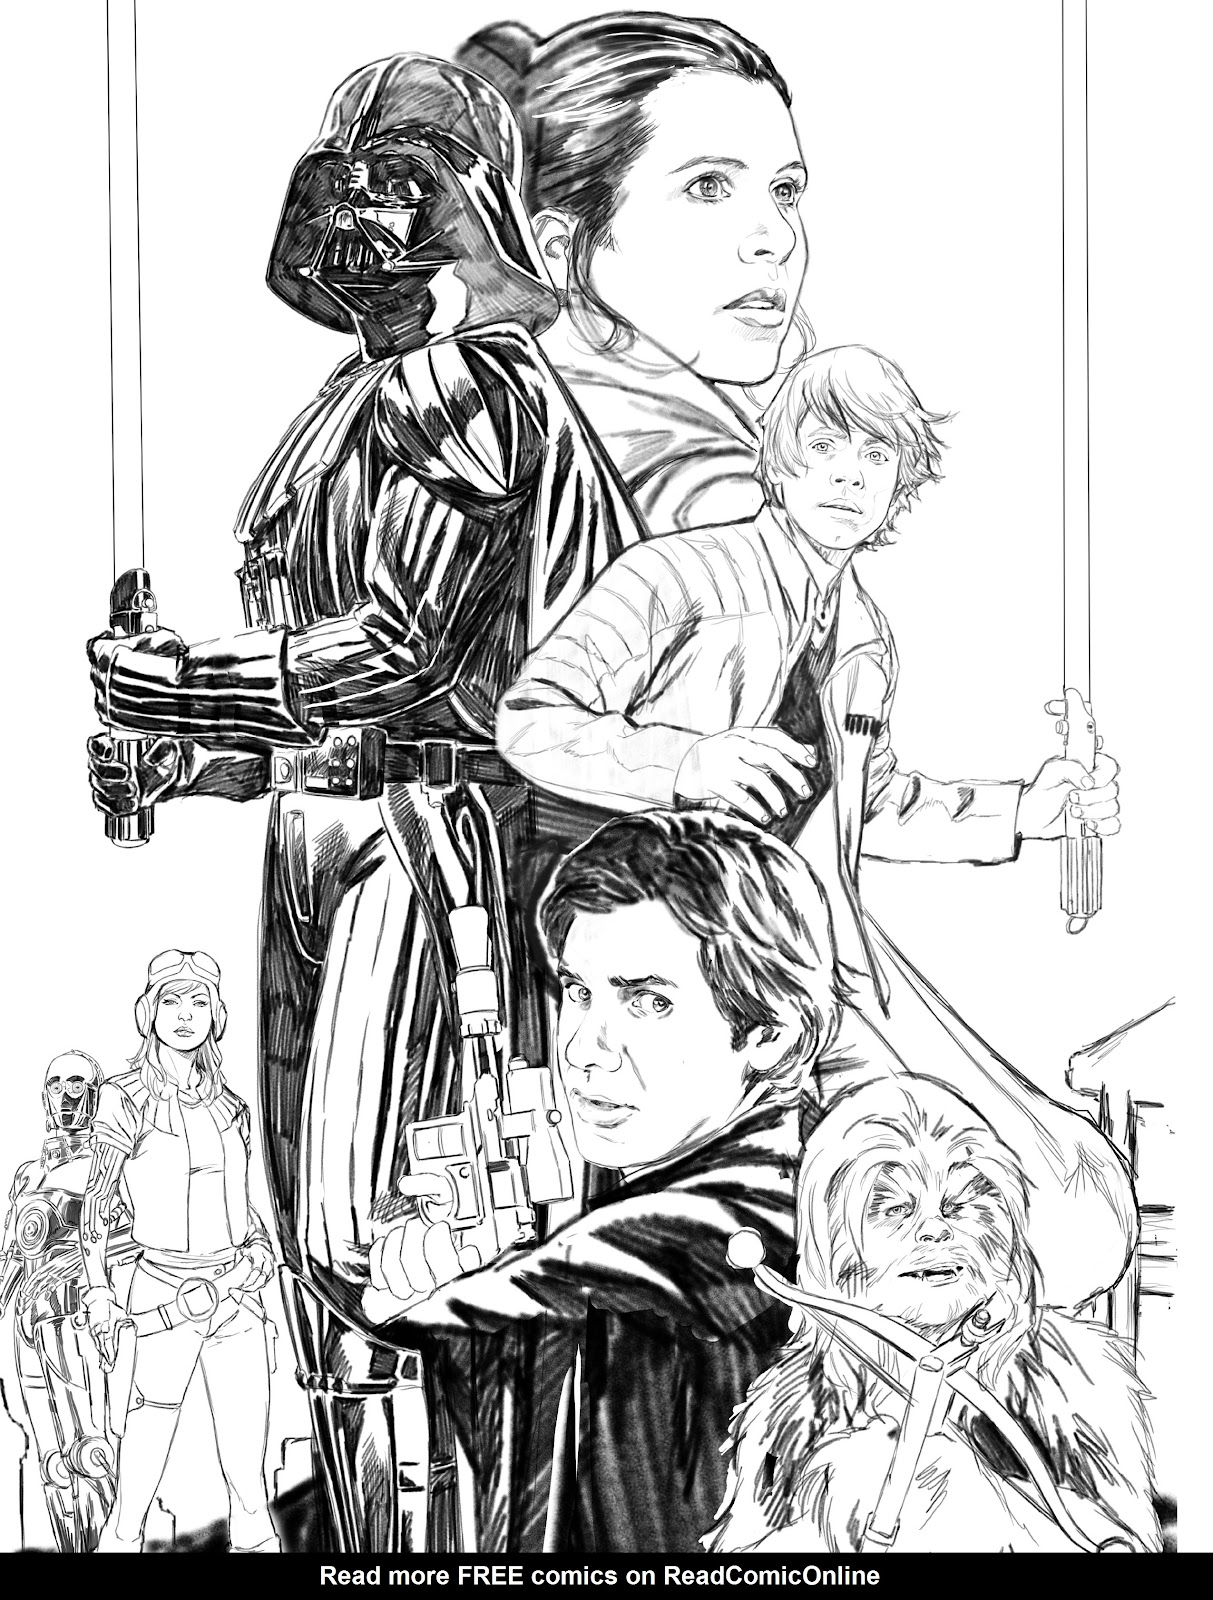 Read online The Marvel Art of Star Wars comic -  Issue # TPB (Part 2) - 98